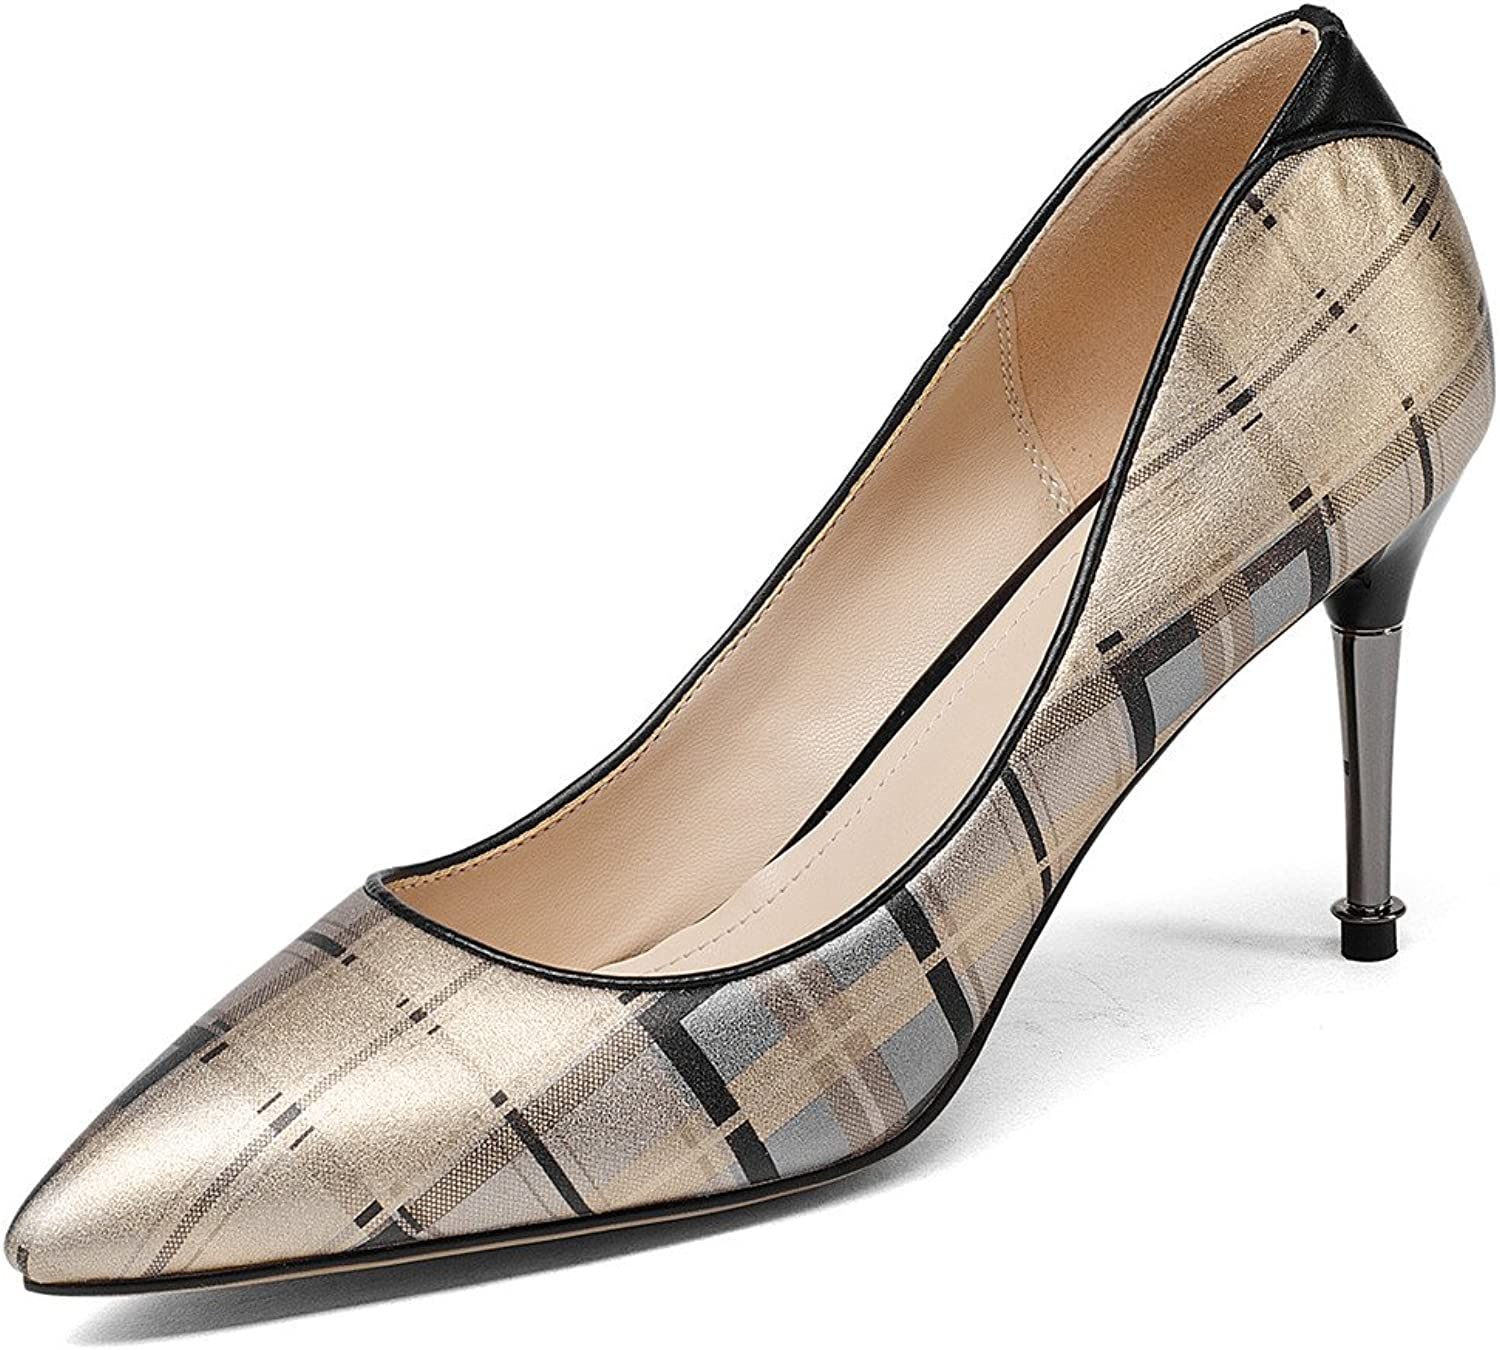 Nine Seven Genuine Leather Women's Pointed Toe Stiletto Heel Fashionable Plaid Handmade gold Pump shoes